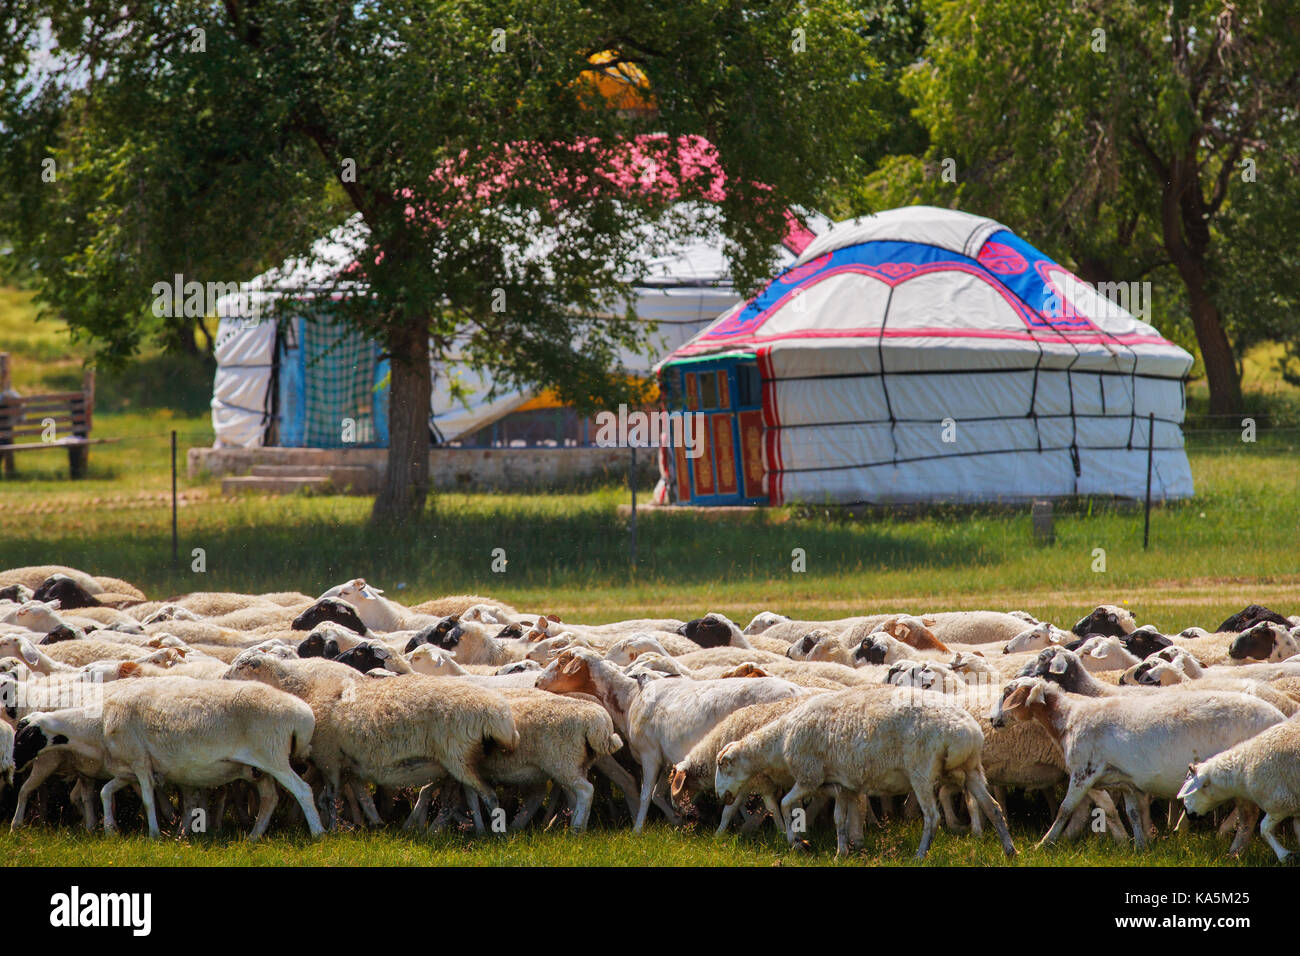 Herd of sheep in grassland of Inner Mongolia, and the yurts where the Mongolian people live in rural areas of the - Stock Image